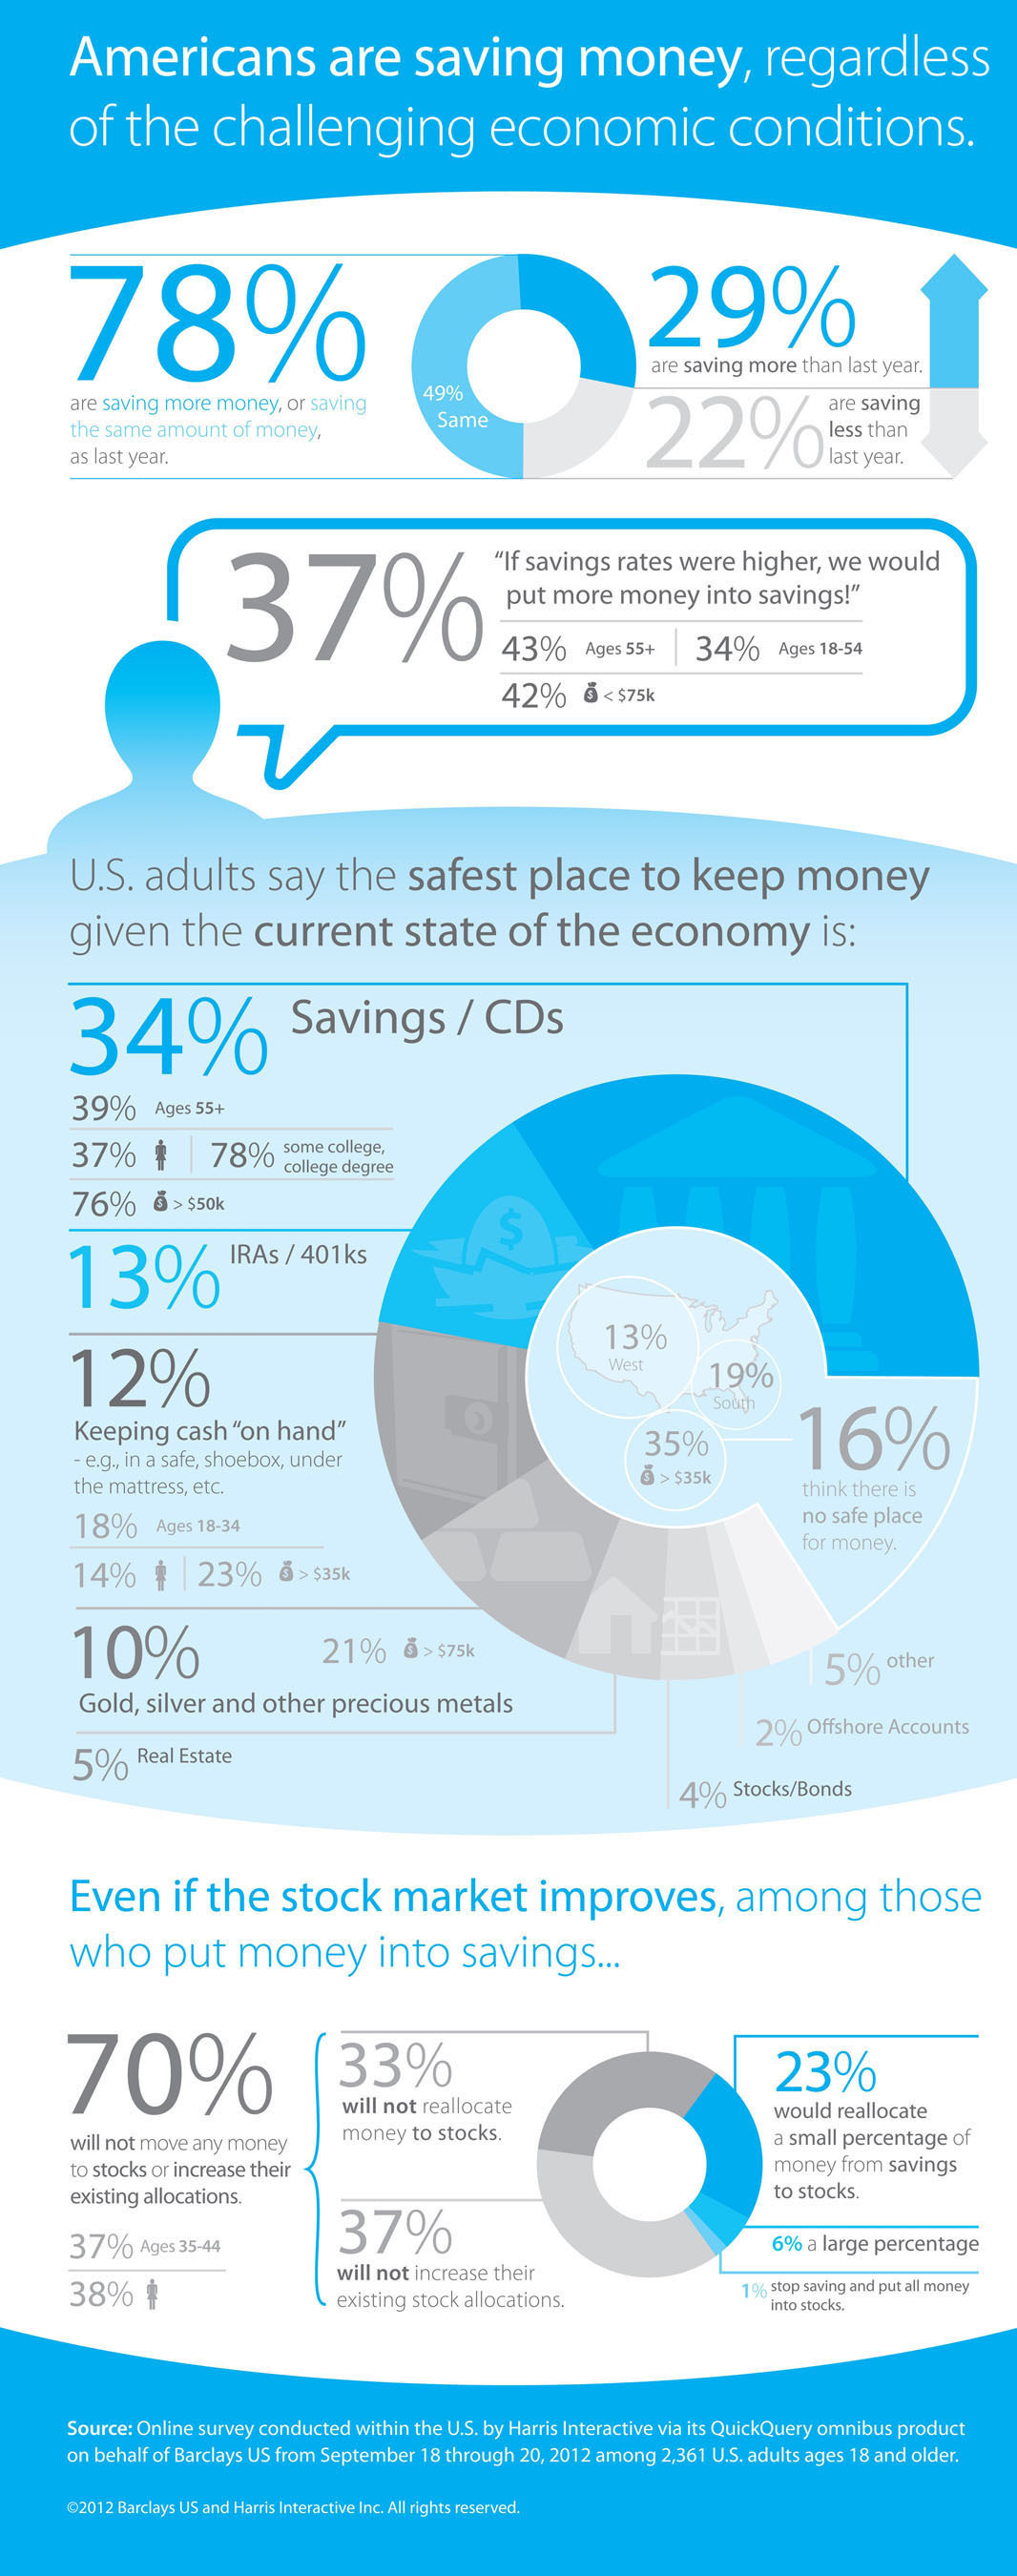 Online survey conducted within the U.S. by Harris Interactive on behalf of Barclays US.  (PRNewsFoto/Barclays US)